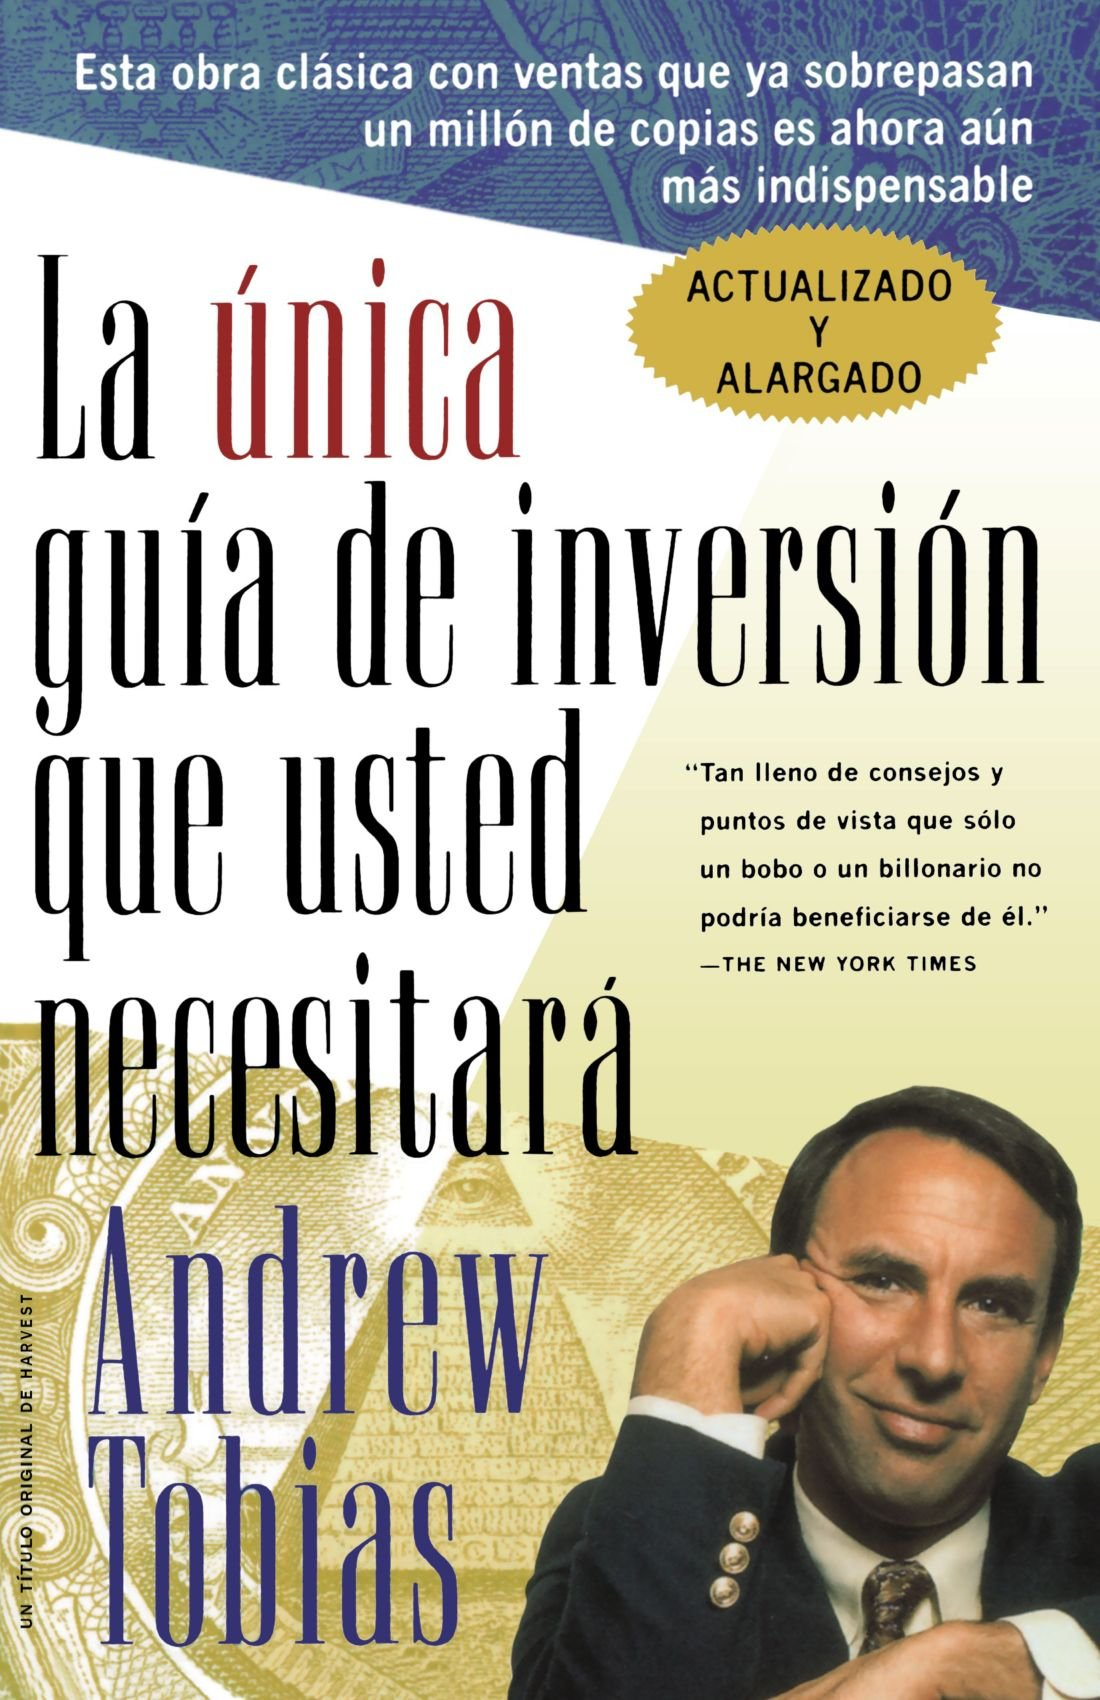 La Unica Guia de Inversion Que Usted Necesitar (The Only Investment Guide You'll Ever Need, Spanish Edition) by Mariner Books